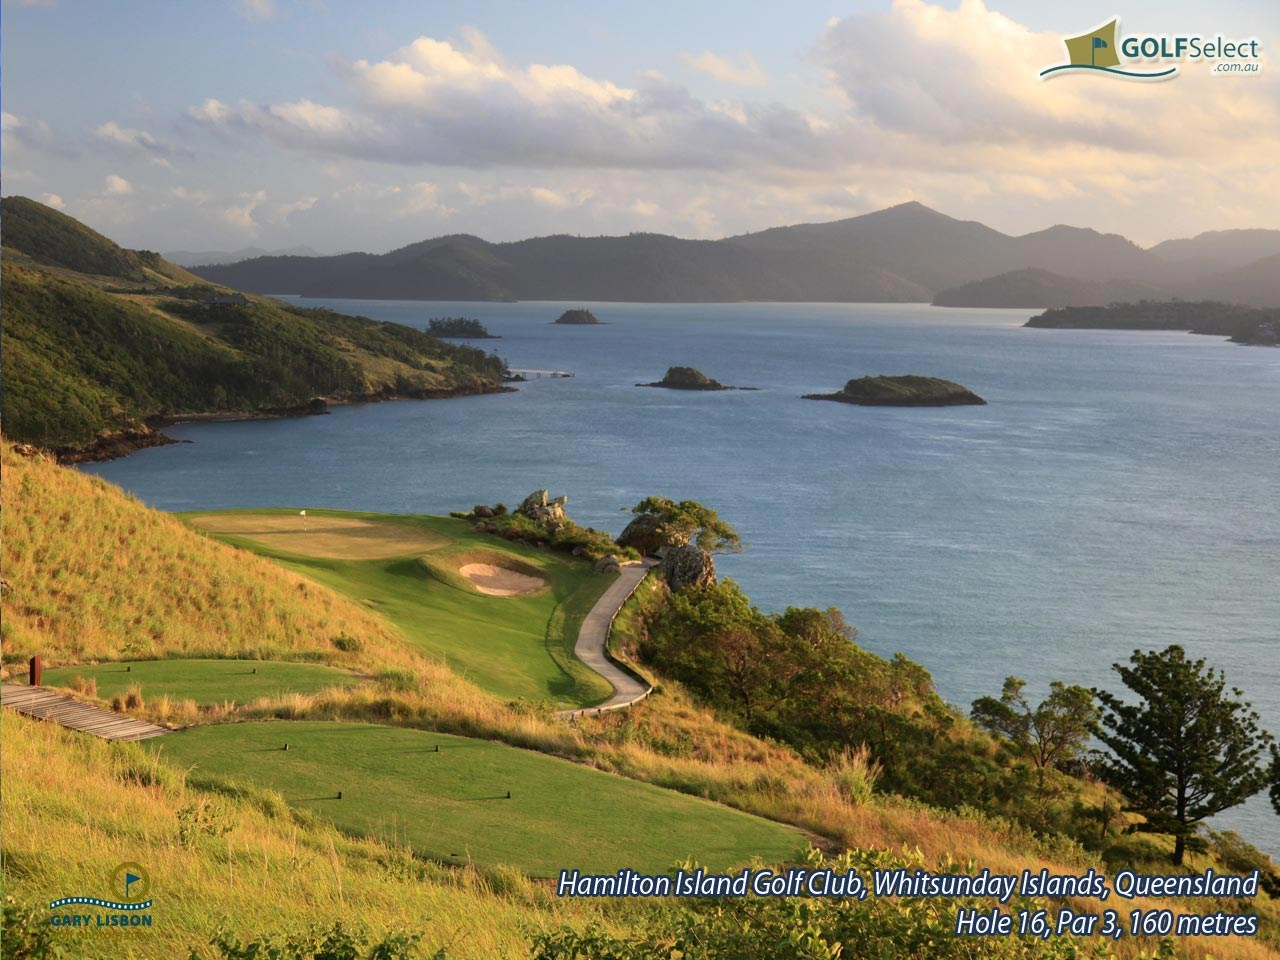 Hamilton Island Golf Club Hole 16, Par 3, 160 metres